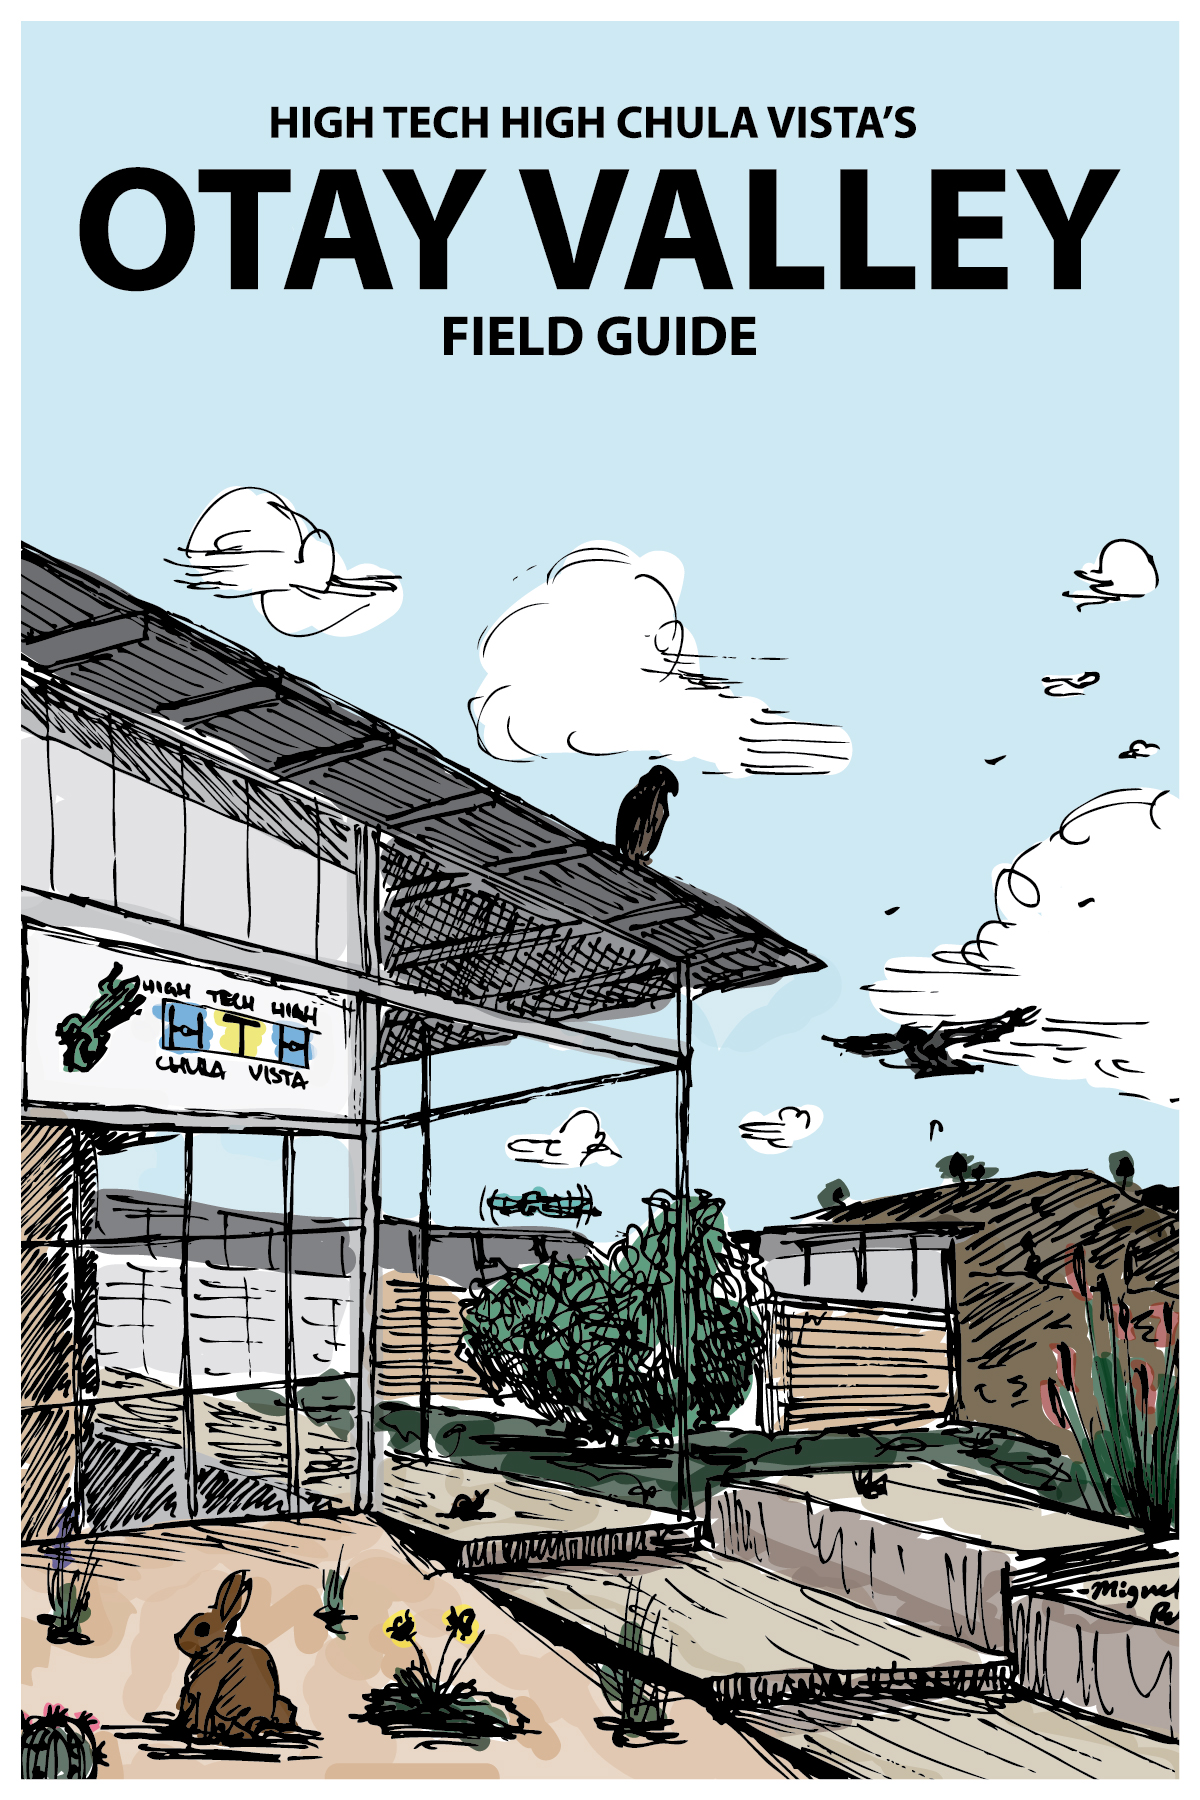 Sept 2015-July 2016: Otay Valley Field Guide - looking closer at the existential cycles of rhyme that the natural world enacts perpetually. consequently, the wildlife started appearing cooler than my classmates. spiritually parted ways with photographing humans and got into wildlife photography. in a way, i was stating my disinterest in the human race and civilization. View field guide >